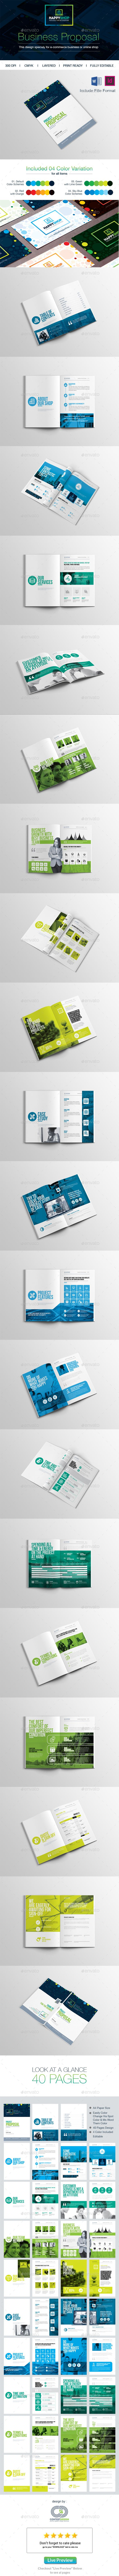 Proposal Template Vector Eps Indesign Indd Ai Illustrator